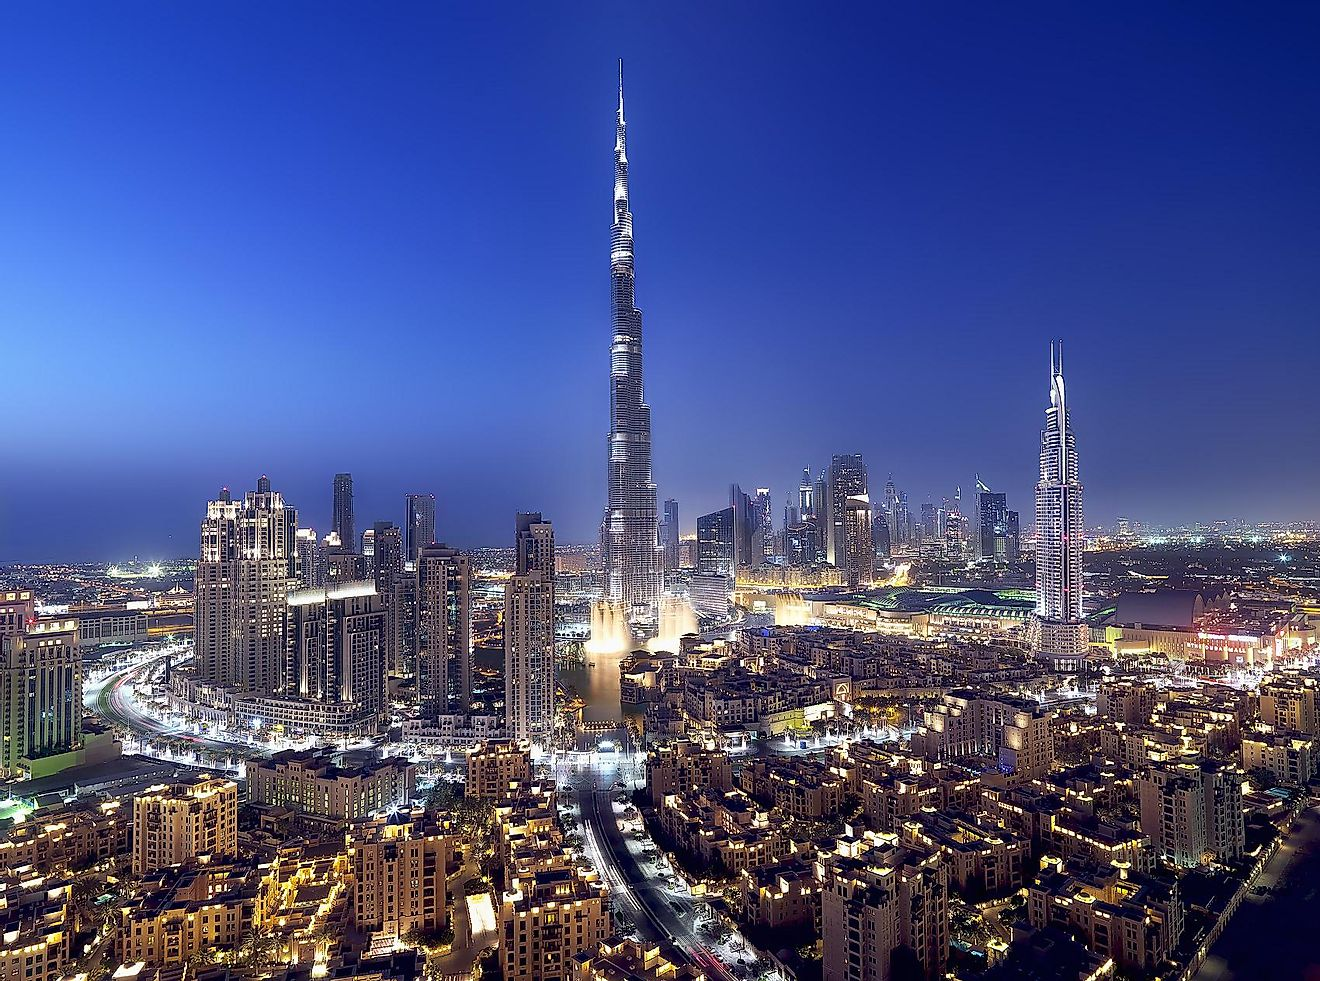 The Burj Khalifa in Dubai is the most popular tourist attraction in this cosmopolitan city.